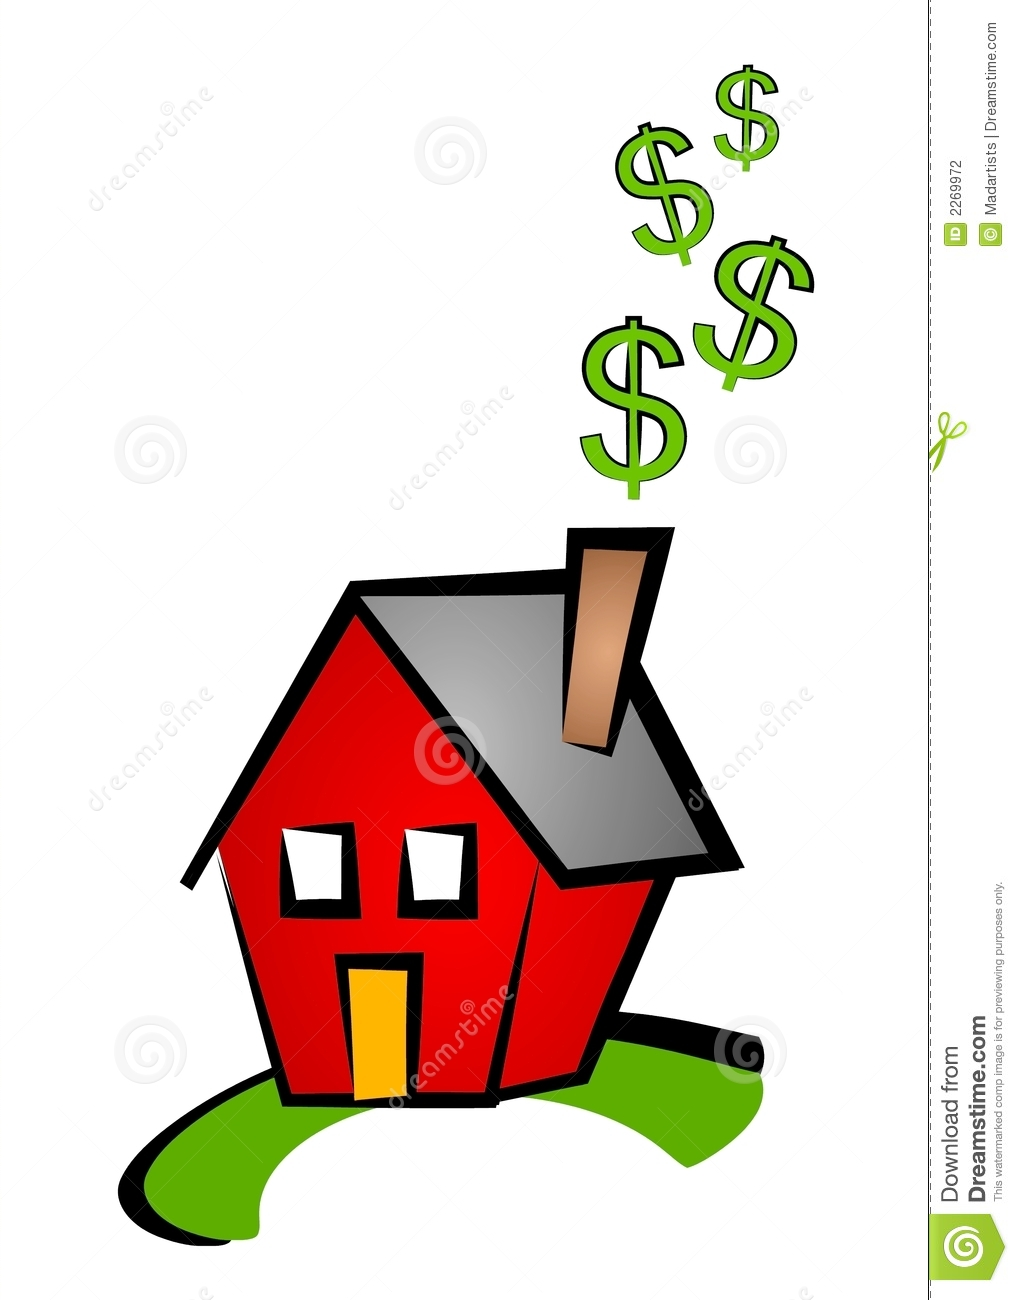 An Illustration Of A Little Red House With Dollar Signs Coming Out Of